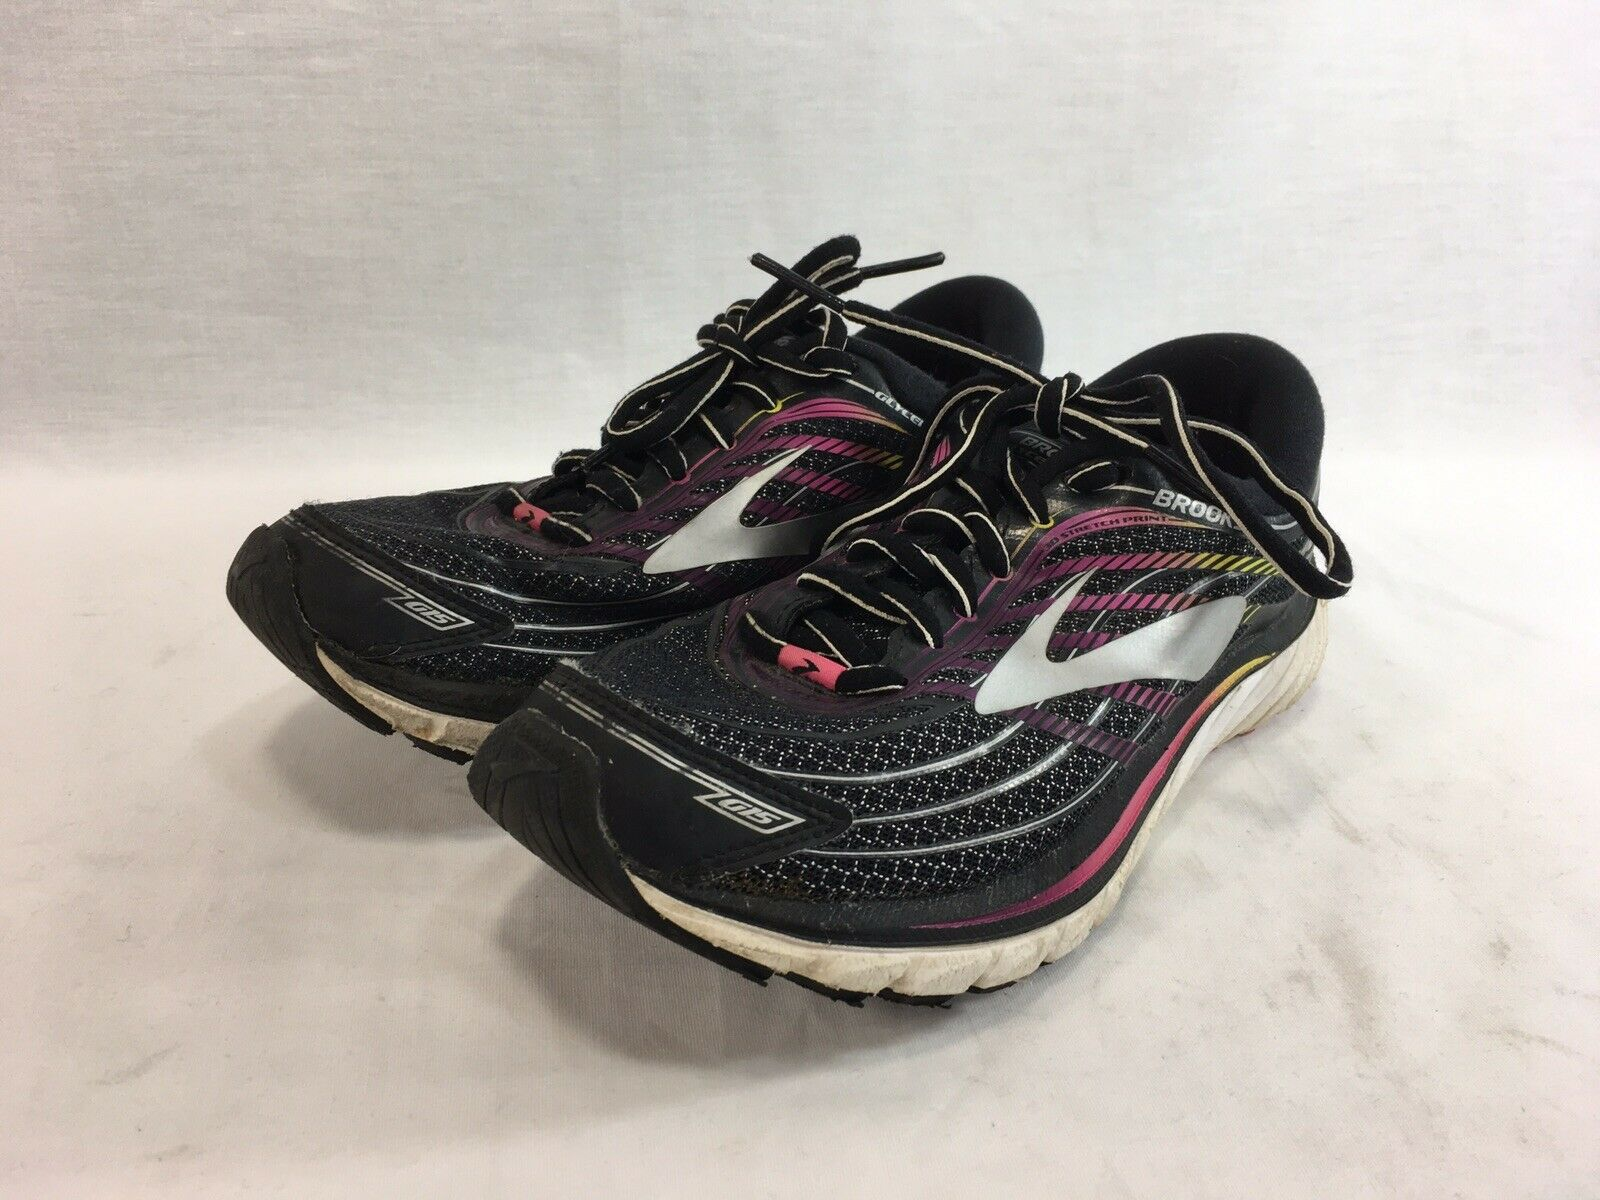 Brooks Glycerin 15 Sneakers shoes Womens 6.5 Black Pink Low Top Lace Up Running